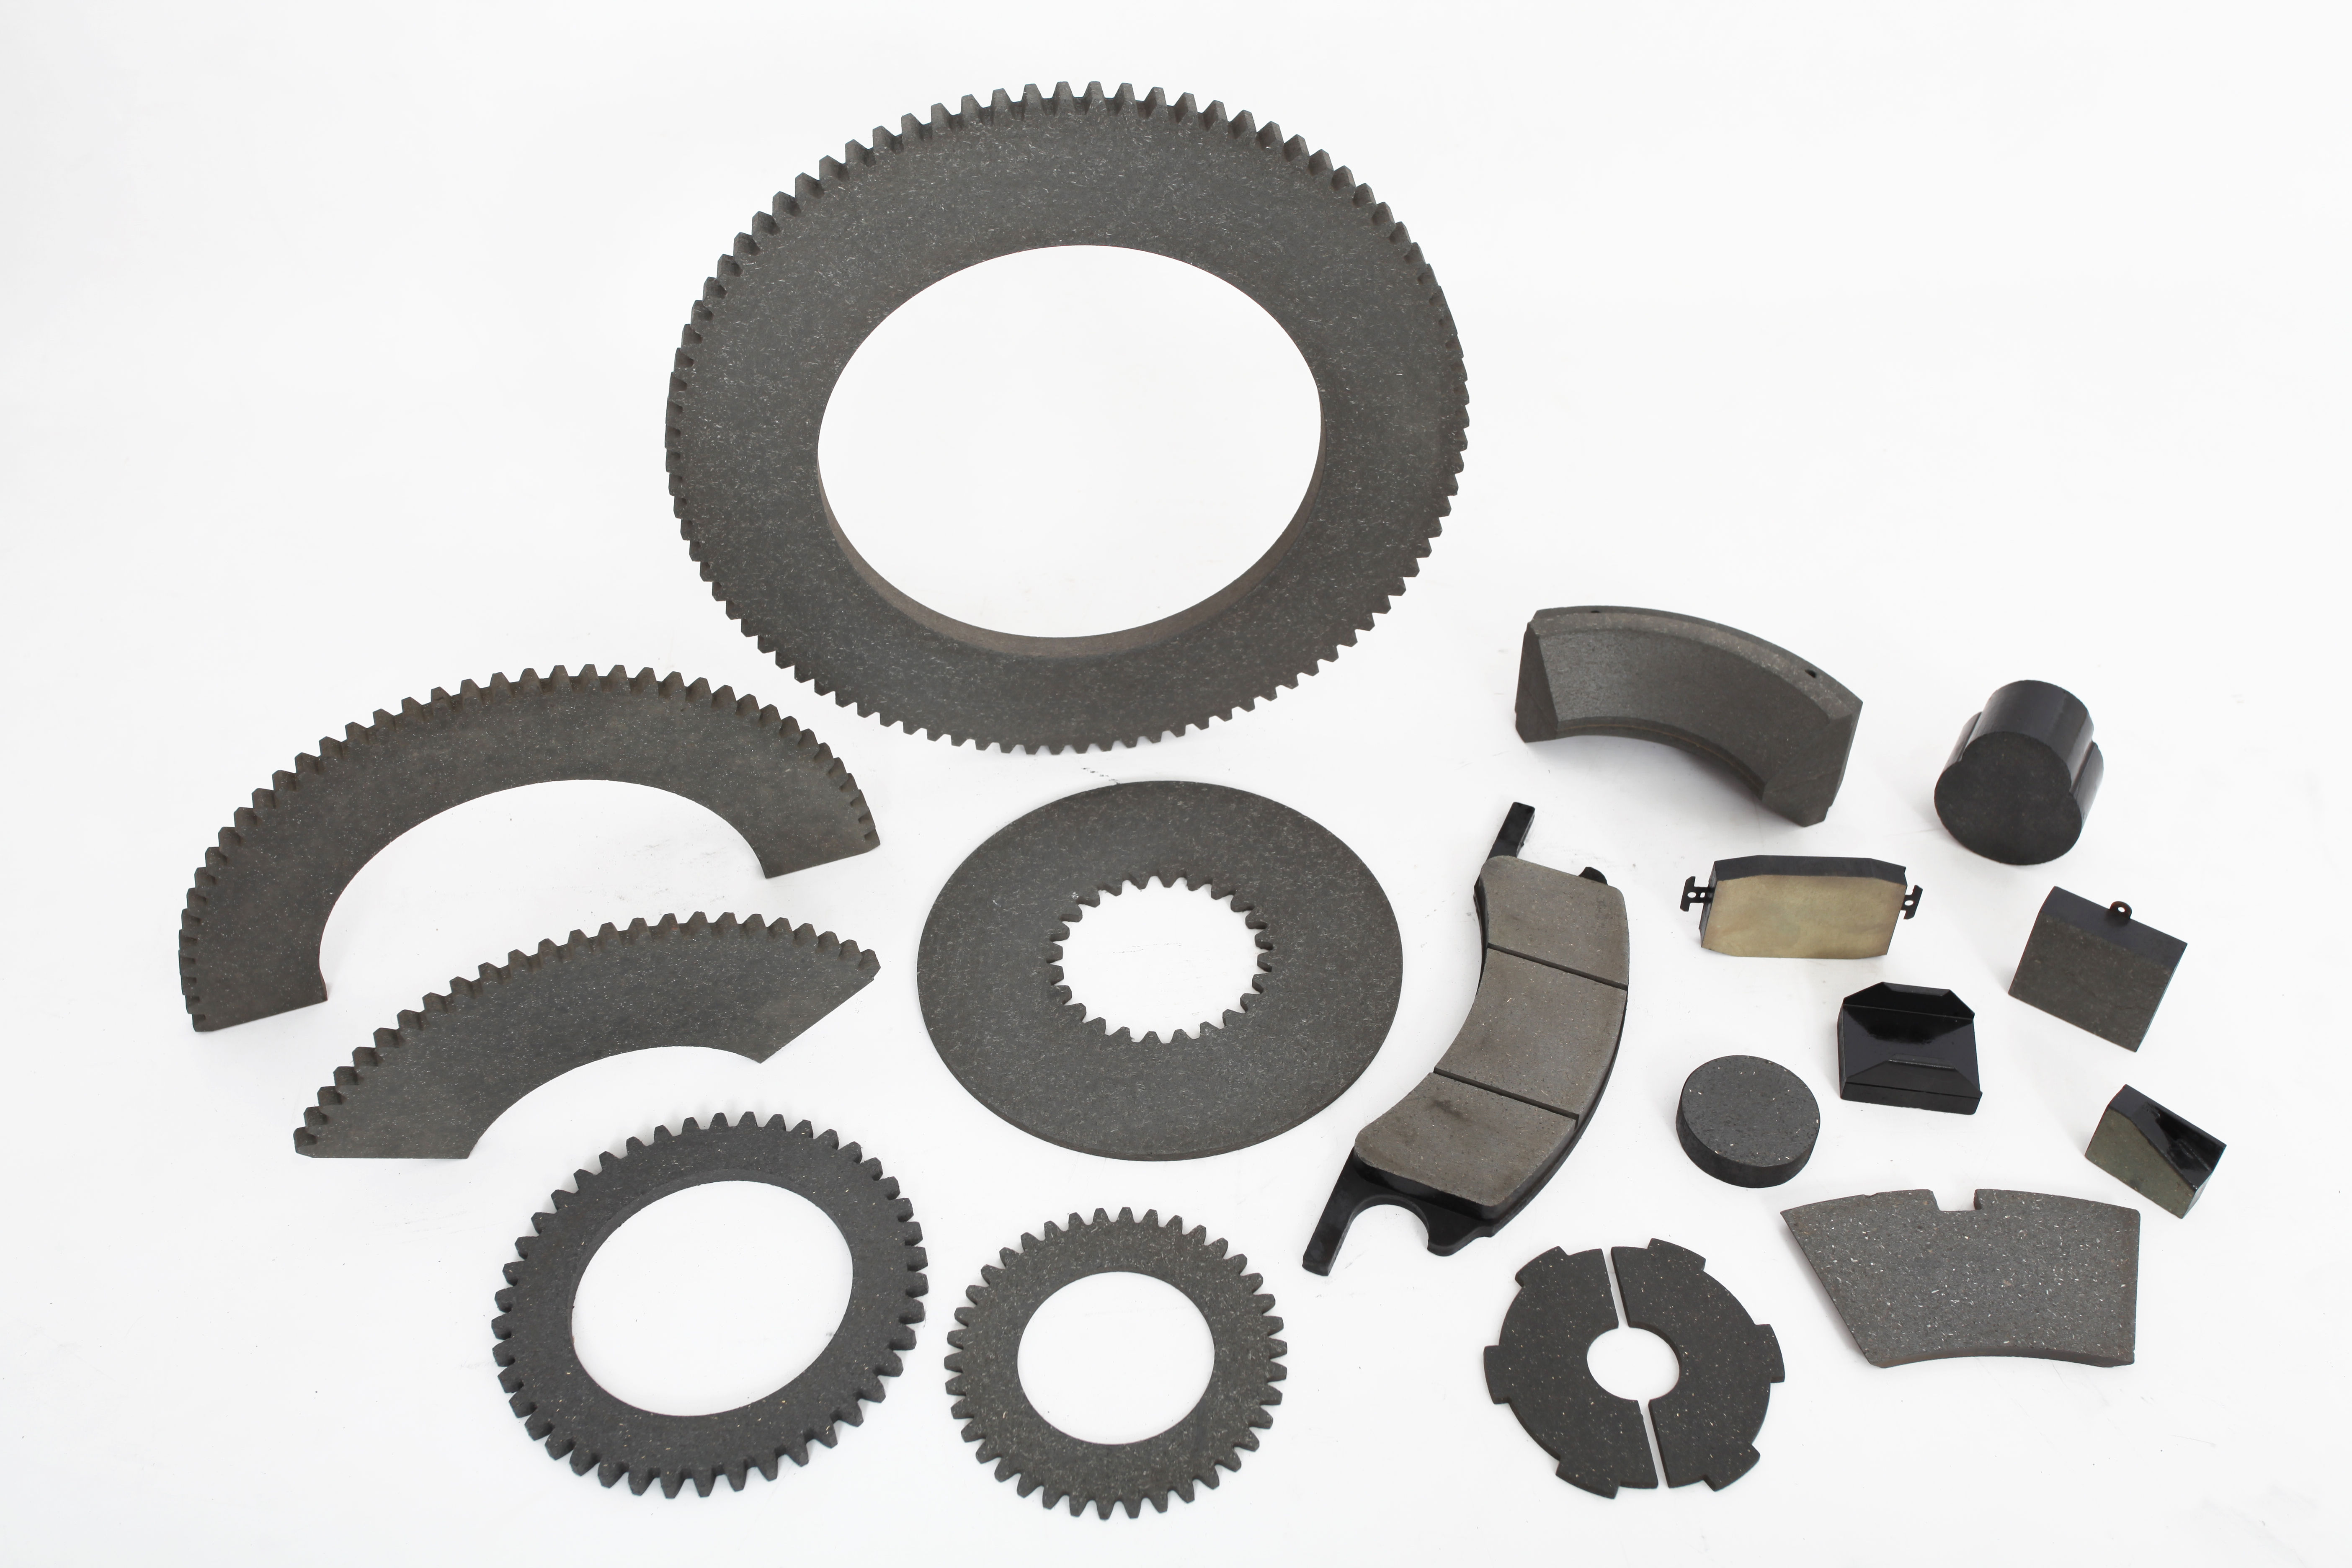 A large collection of parts which Industrial Brakes has to offer